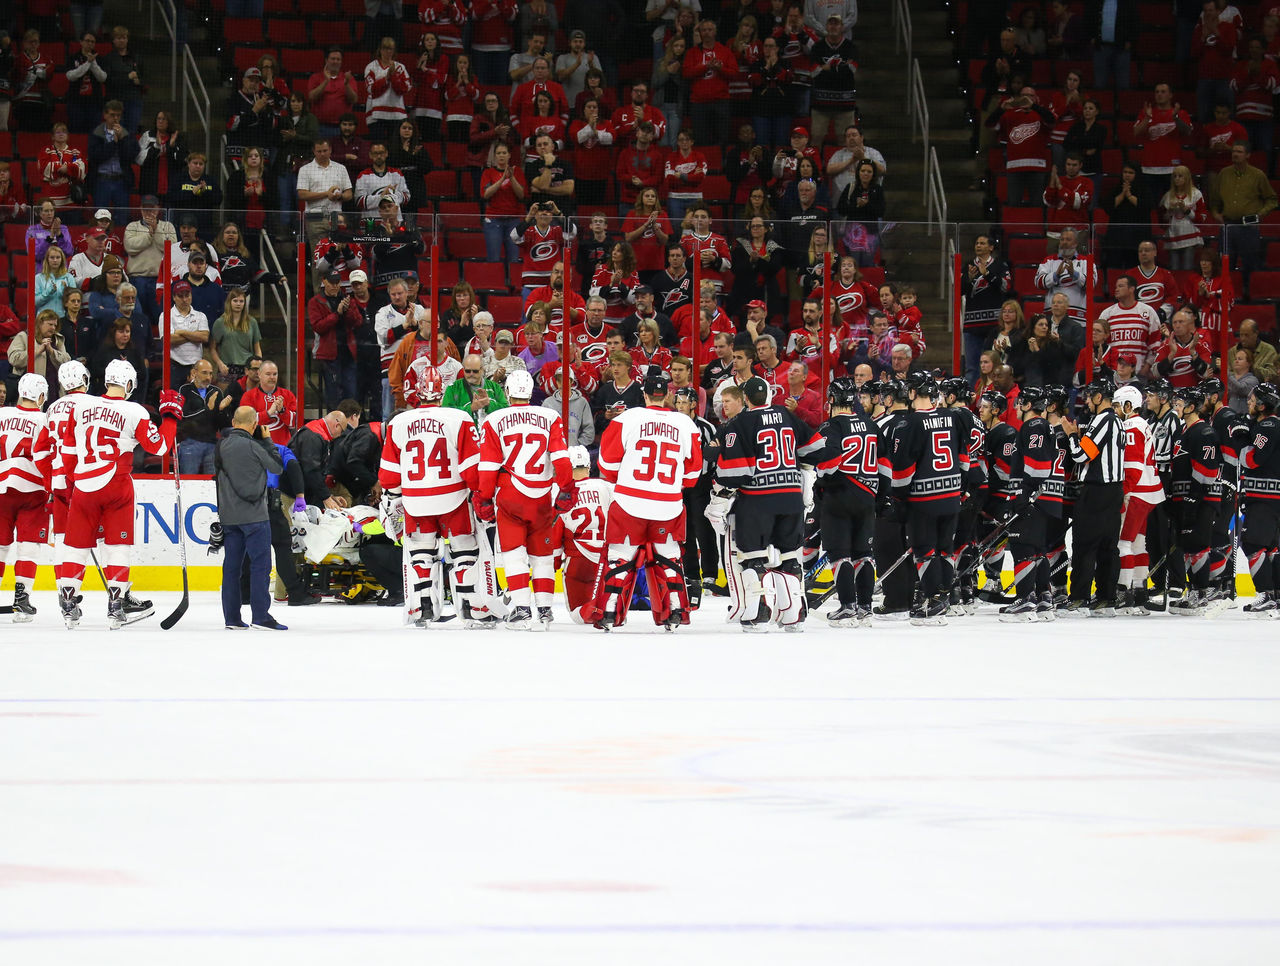 Cropped 2017 03 28t021953z 924879919 nocid rtrmadp 3 nhl detroit red wings at carolina hurricanes